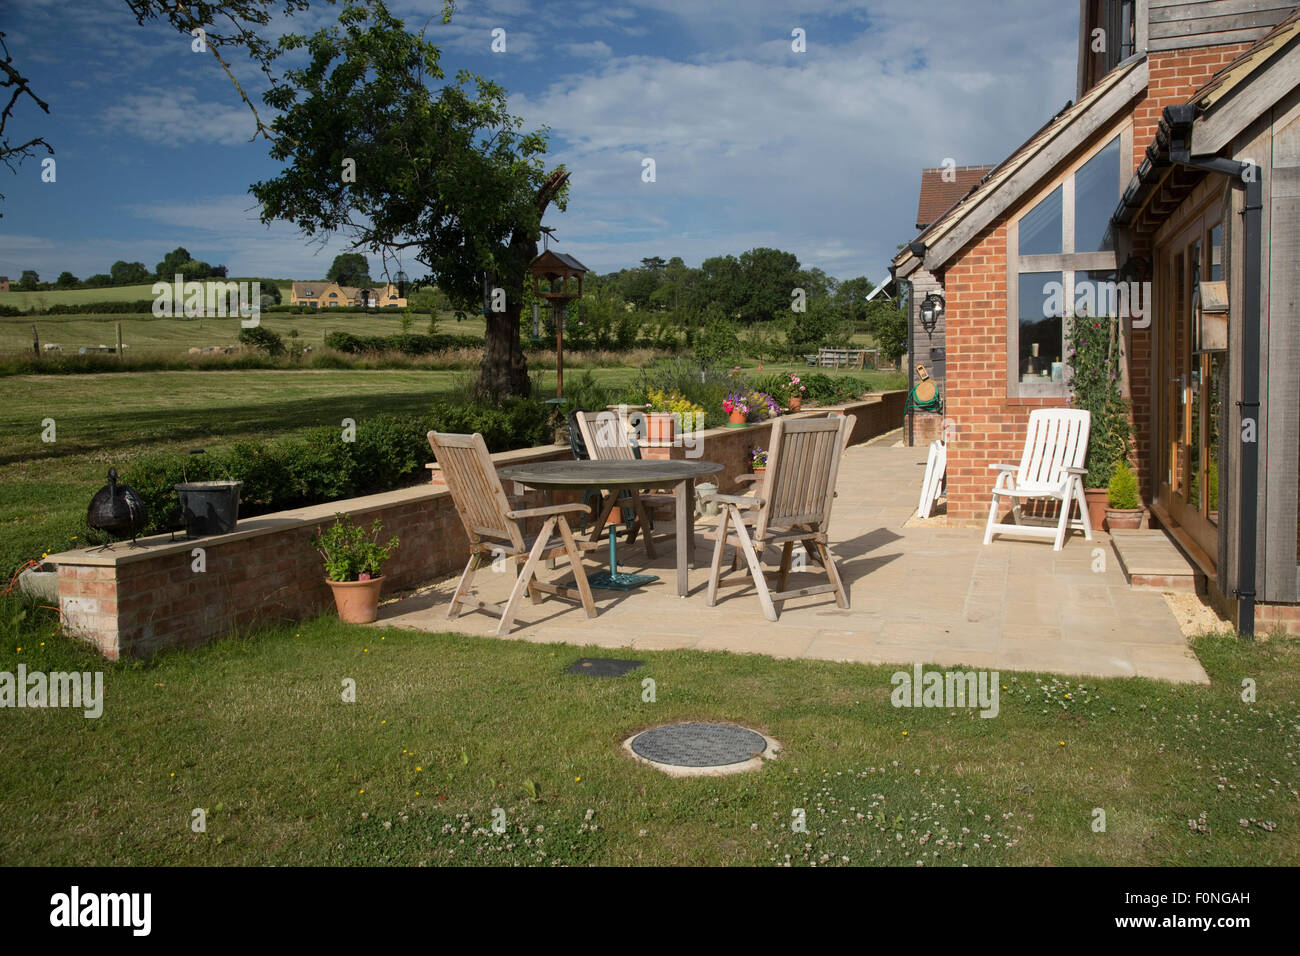 Empty teak chairs and table on patio of new ecohouse UK - Stock Image